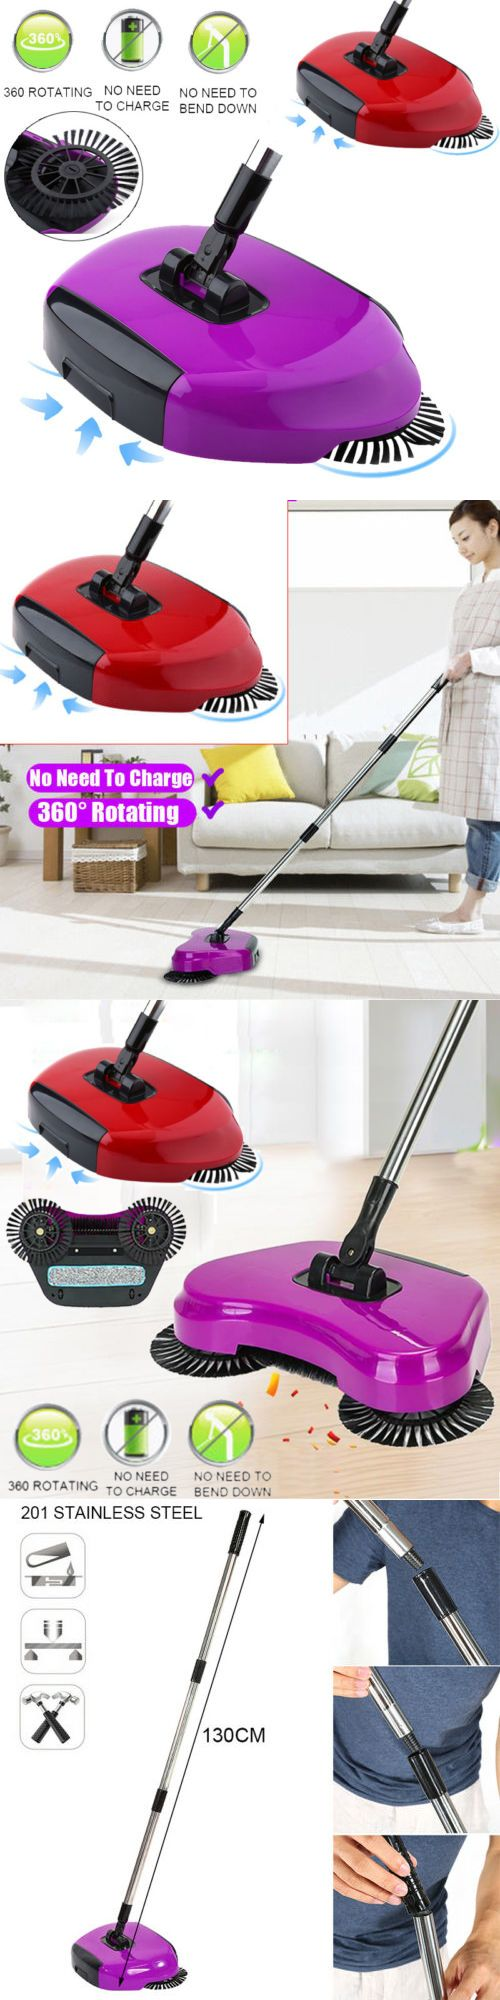 Carpet And Floor Sweepers 79657 Automatic Spin Hand Push Sweeper Broom Household Clean No Electricity Ma Shoe Storage Stackable Plastic Drawers Floor Sweepers